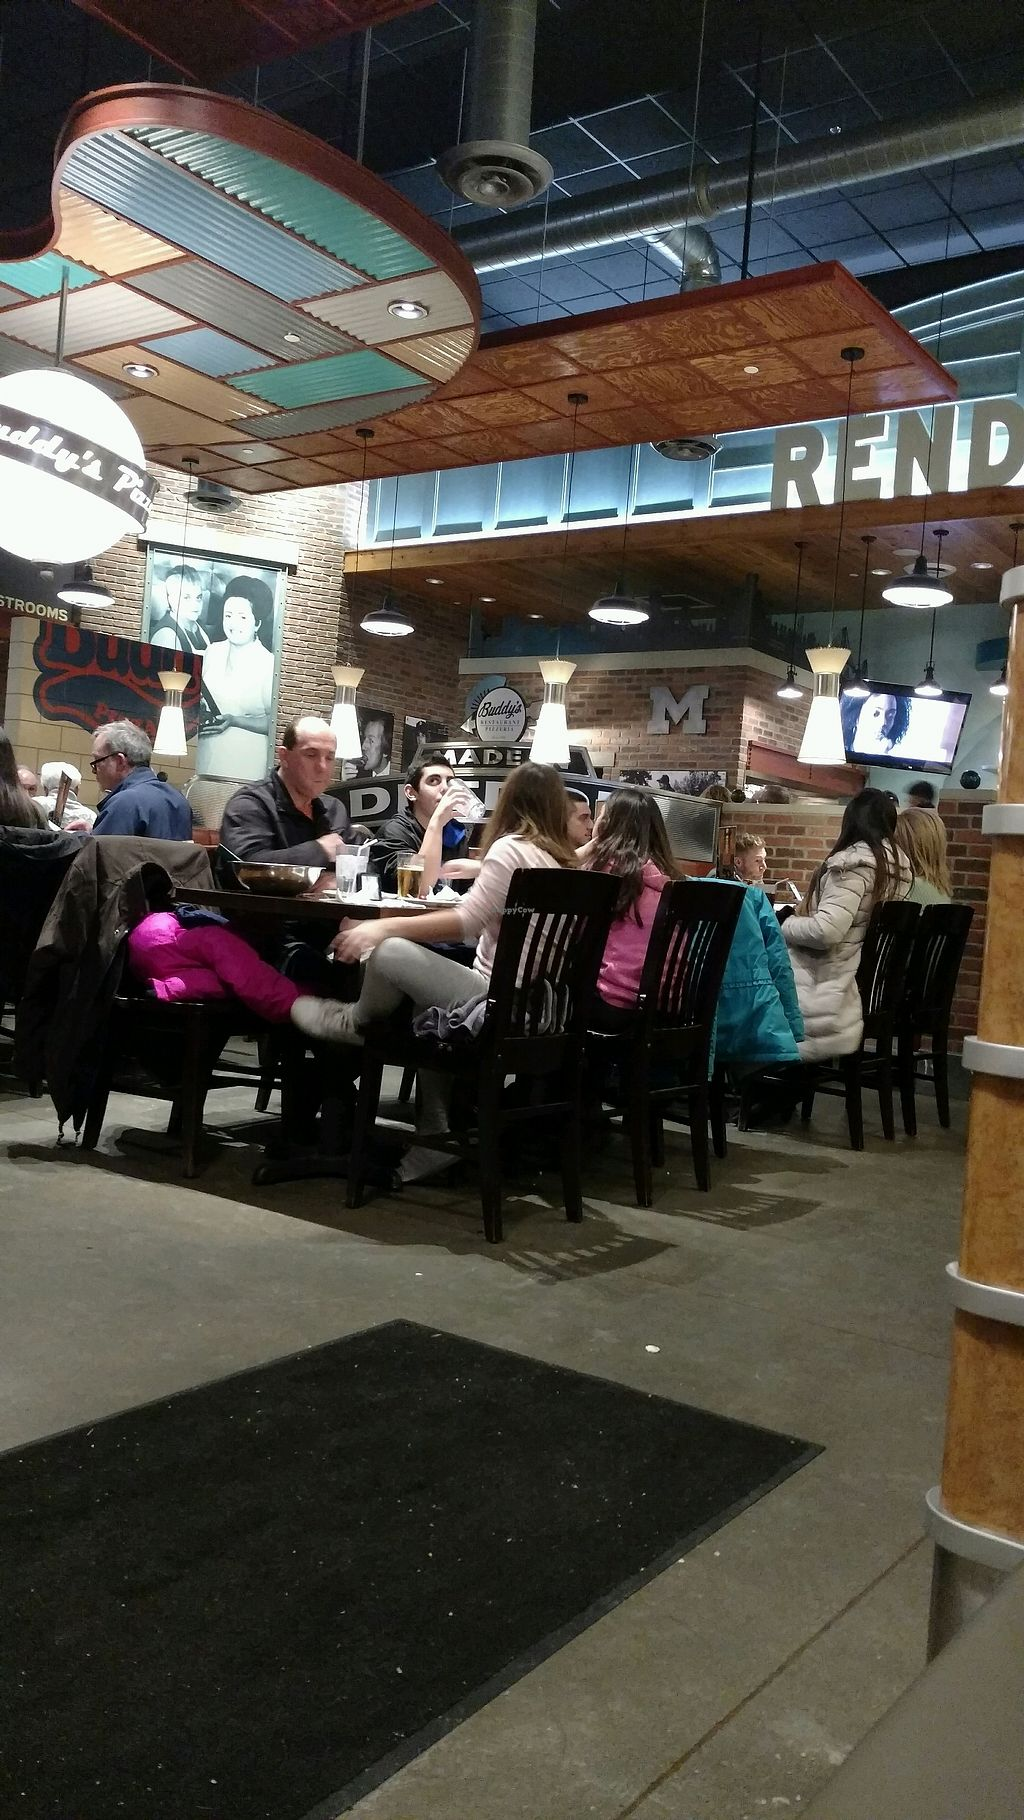 "Photo of Buddy's Pizzeria  by <a href=""/members/profile/Queensnake88"">Queensnake88</a> <br/>busy and messy <br/> February 24, 2018  - <a href='/contact/abuse/image/54577/363019'>Report</a>"